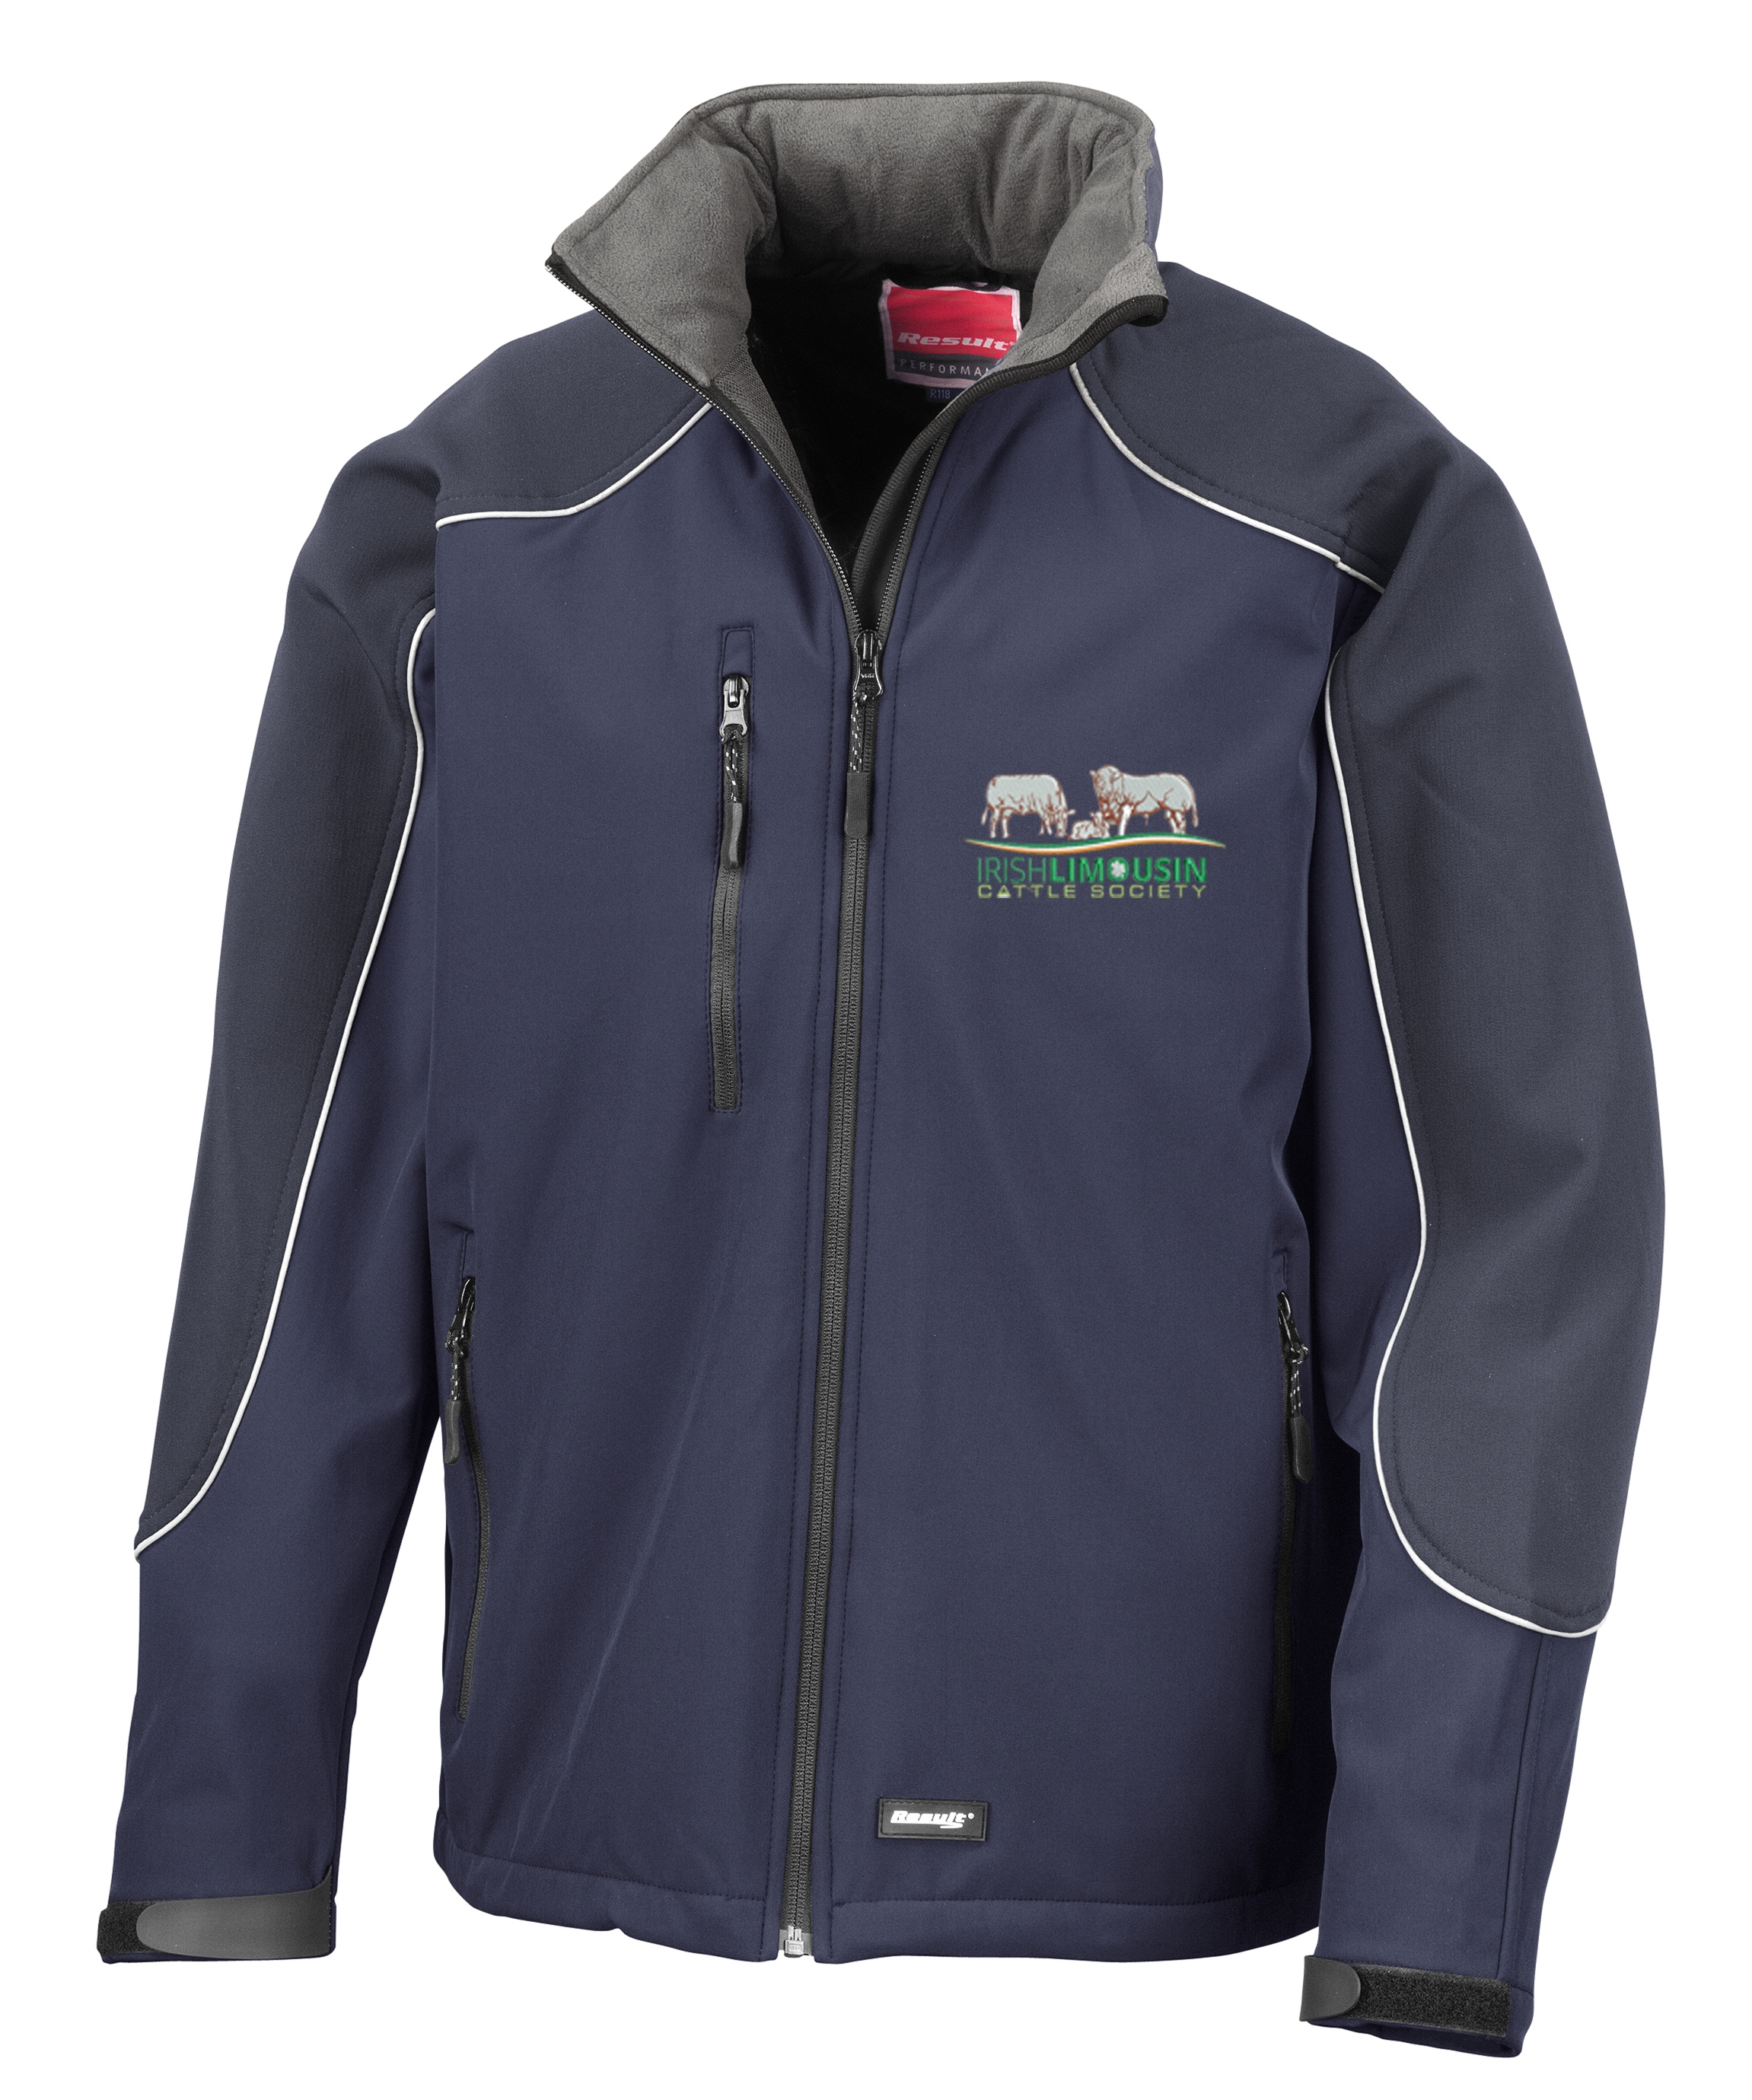 Irish Limousin Cattle Society Result Icefell Jacket